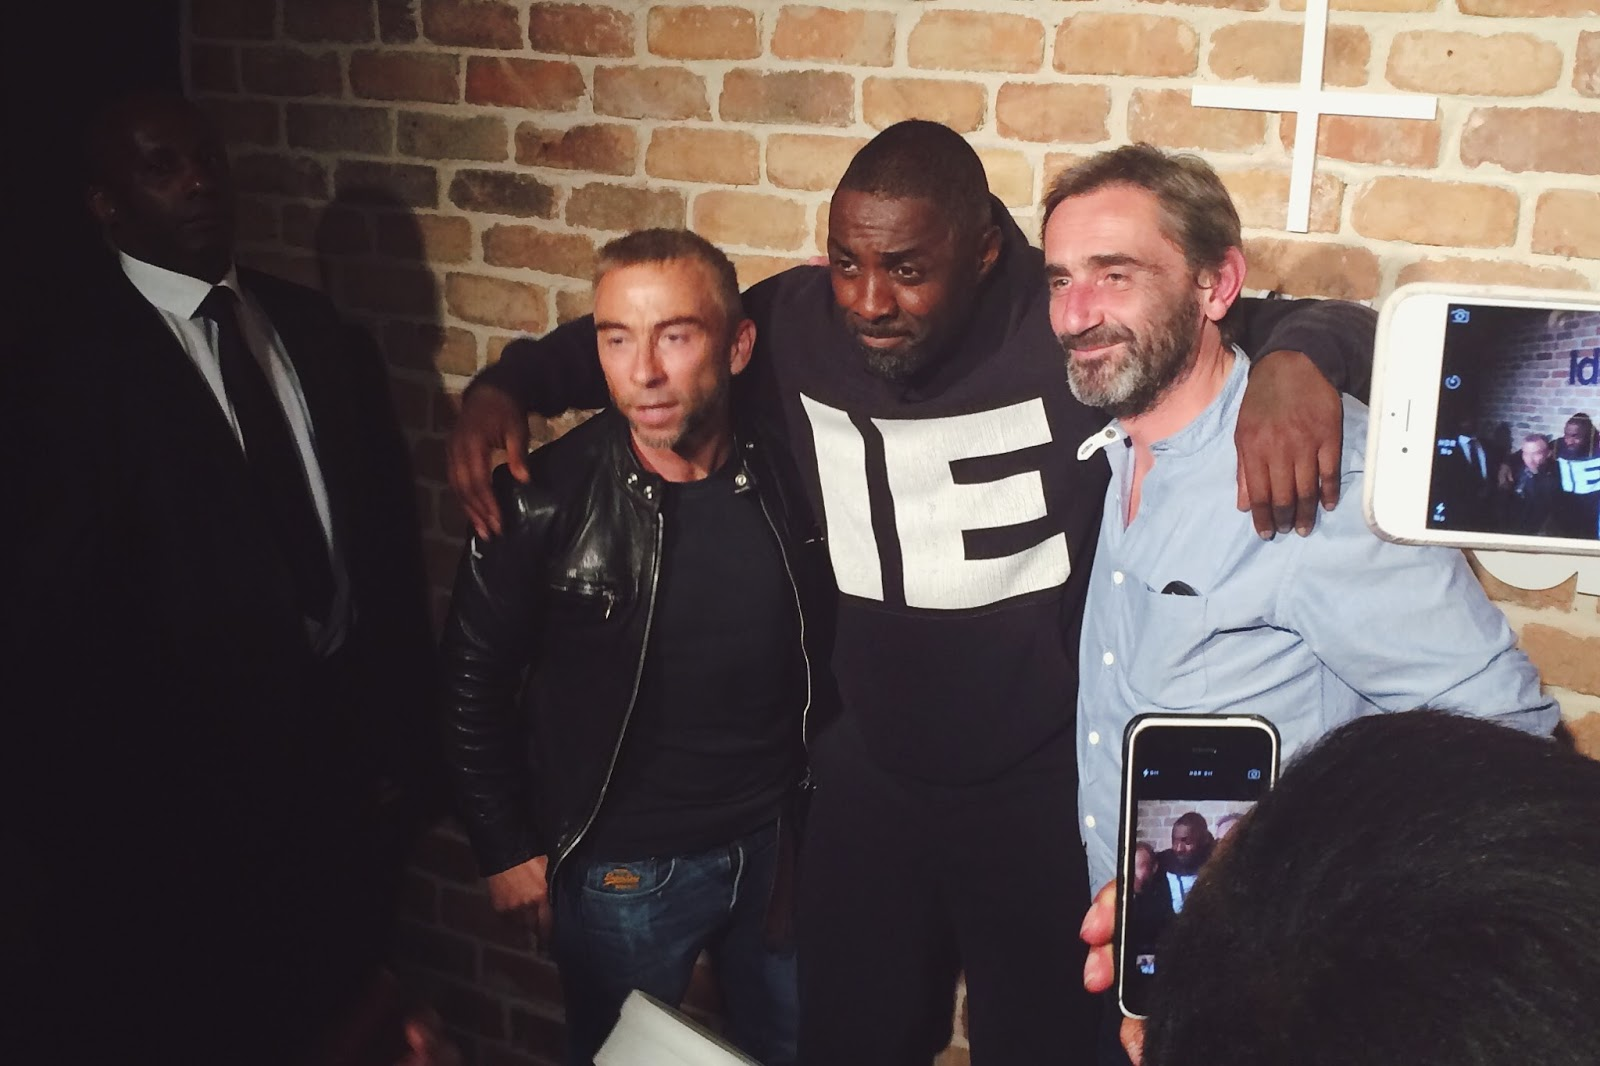 Idris Elba, Superdry, Idris Elba x Superdry, LCM, FashionFake, fashion bloggers